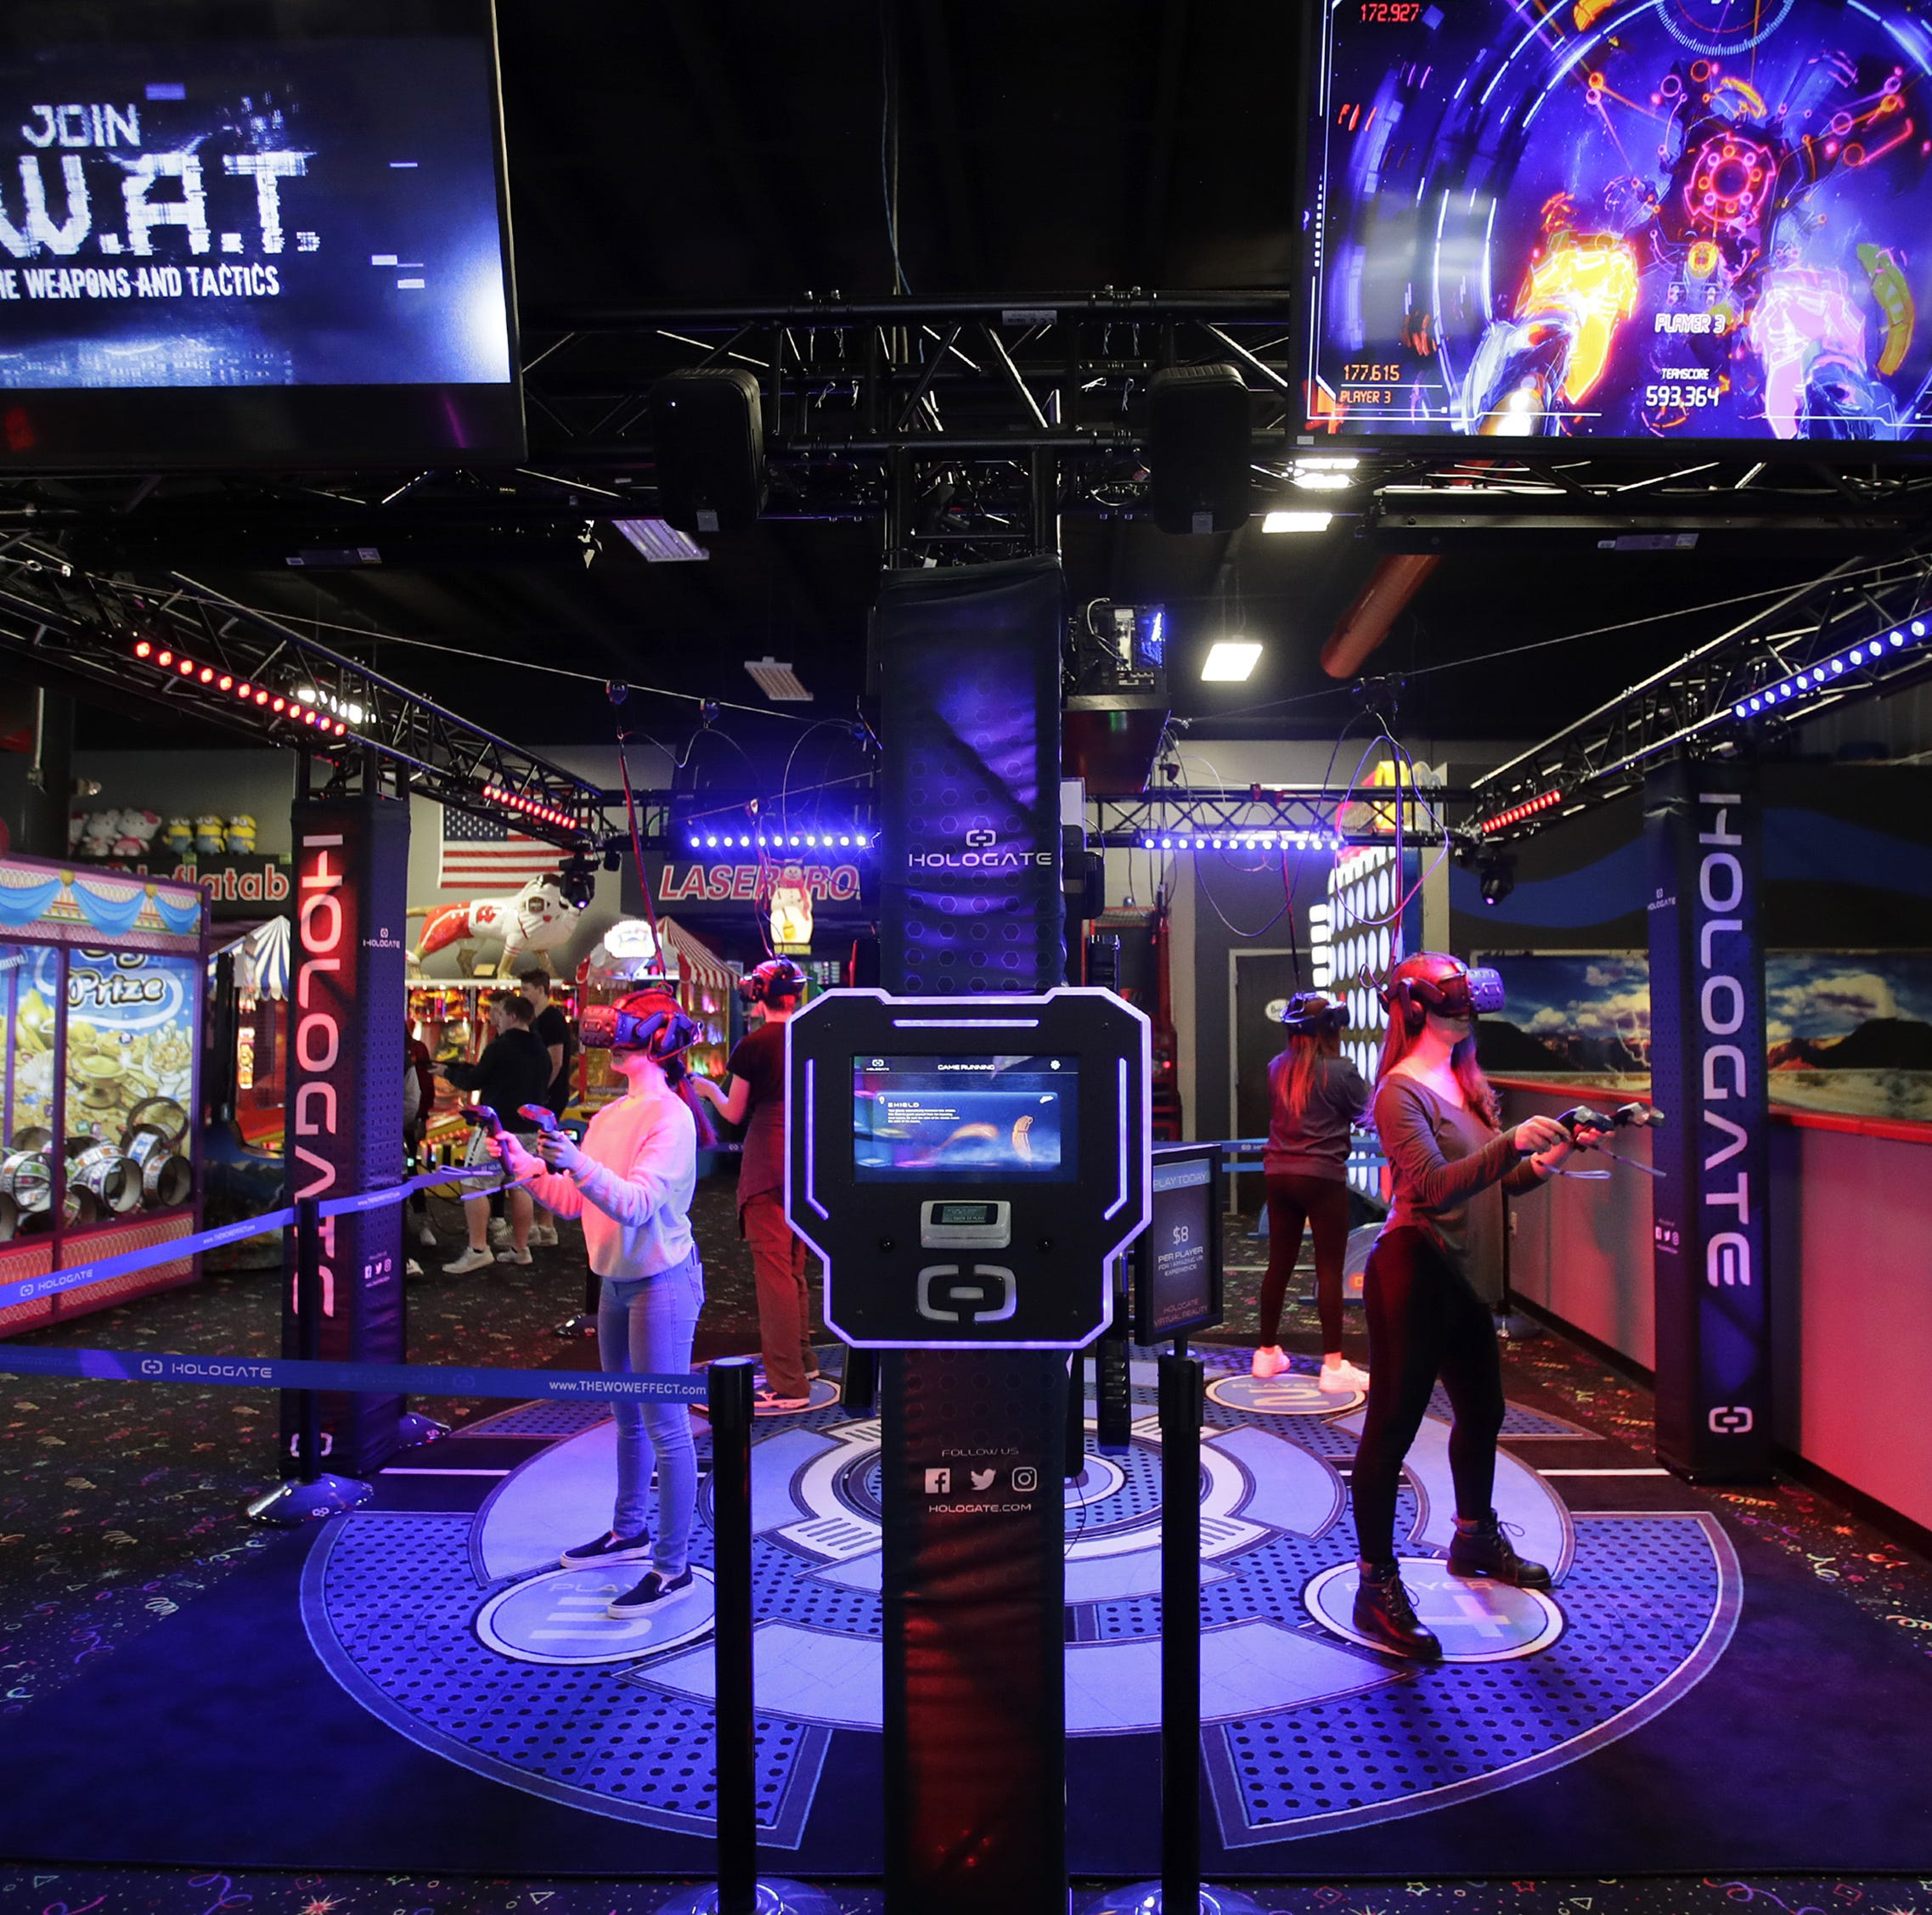 'Bigger, faster, brighter': Badger Sports Park ups its game with VR and laser tag overhaul